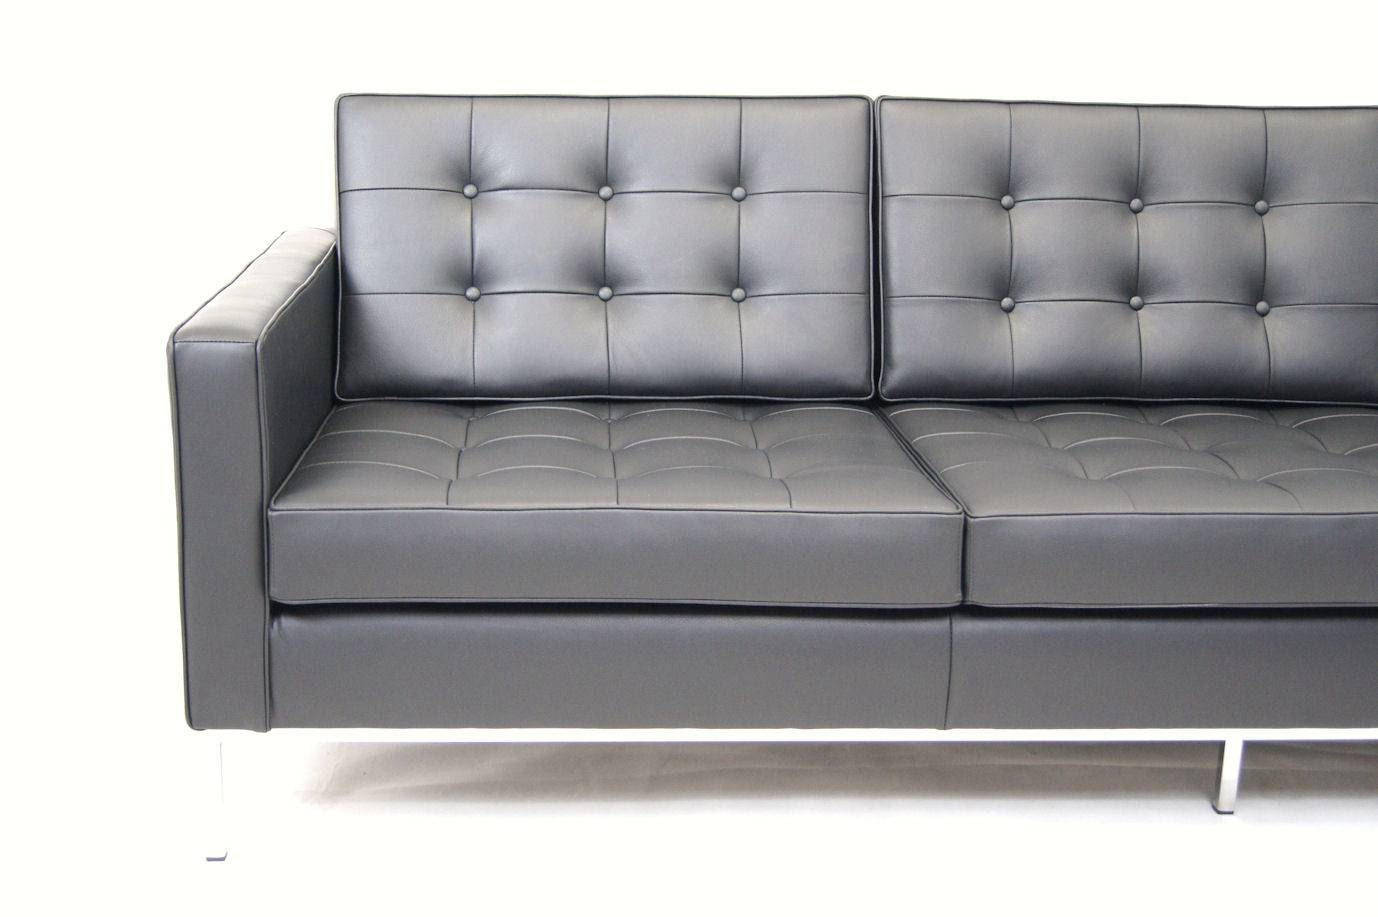 Decoration Knoll Florence Sofa With Florence Knoll Sofa Florence throughout Florence Leather Sofas (Image 6 of 30)